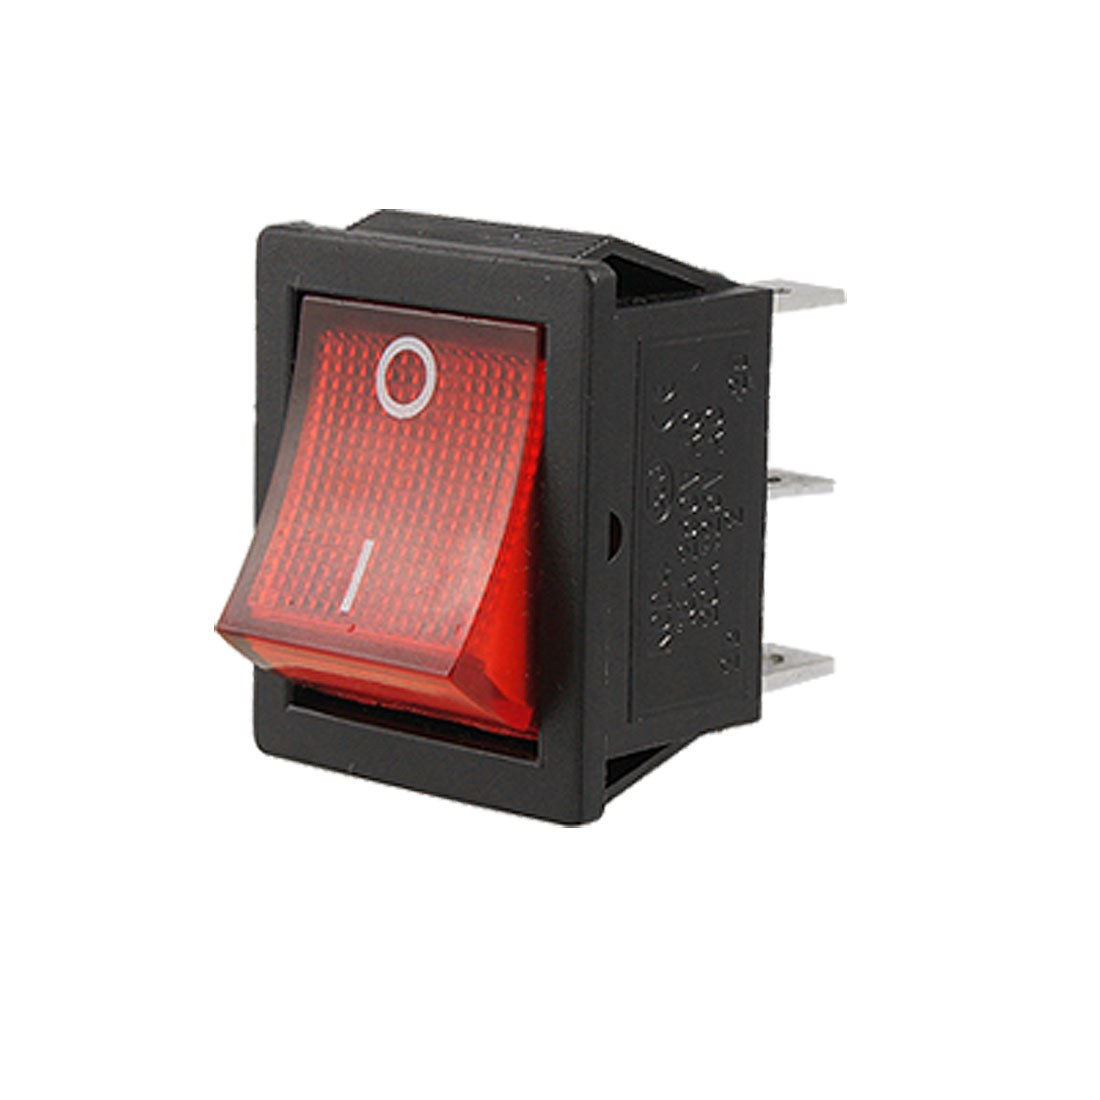 AC 16A/250V 20A/125V Red Light DPDT ON/ON Snap in Boat Rocker Switch 29x21.5mm